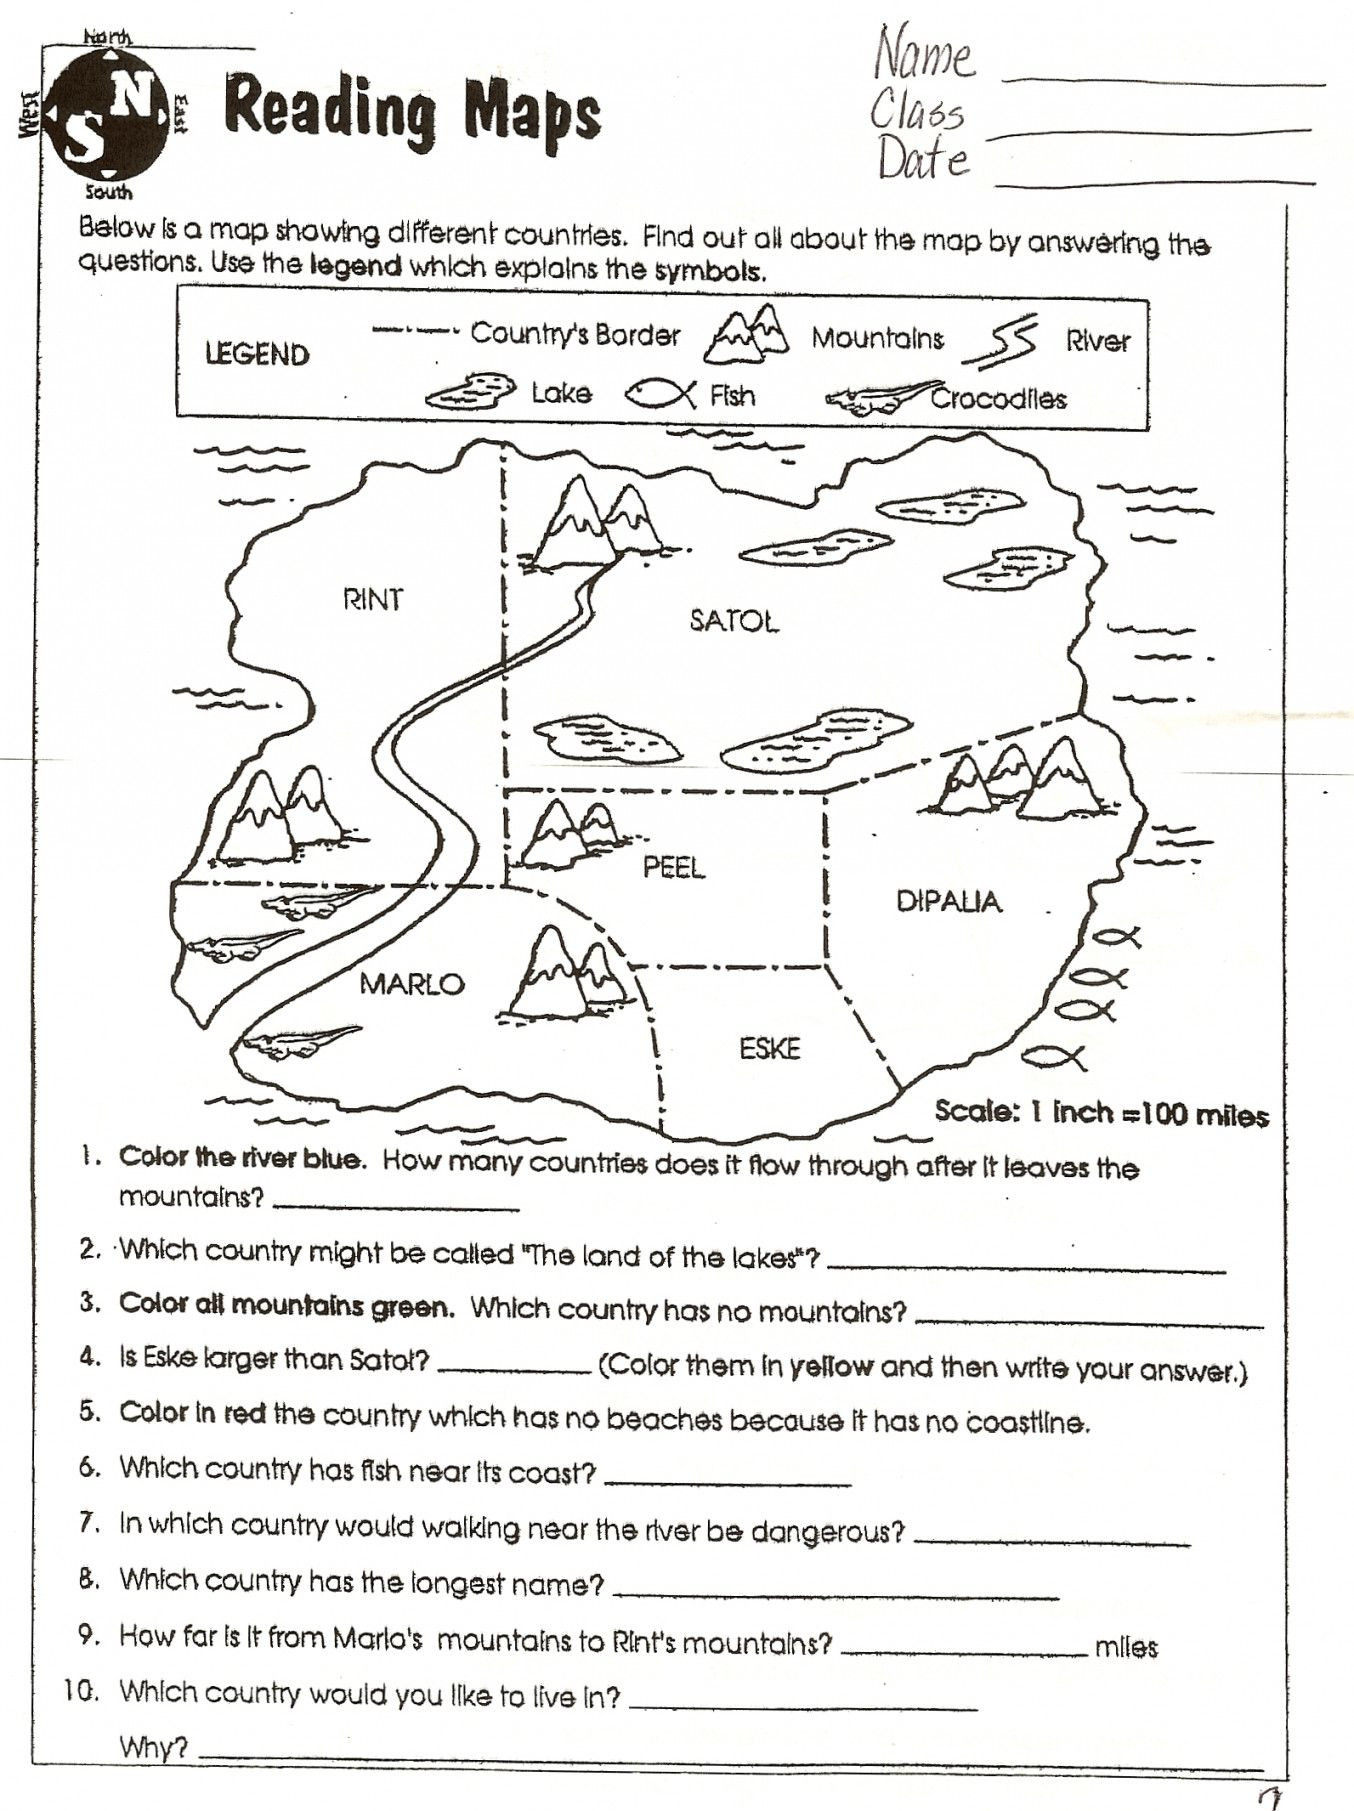 Map Worksheets 2nd Grade Map Skills Worksheets to Printable 5th Grade Middle School